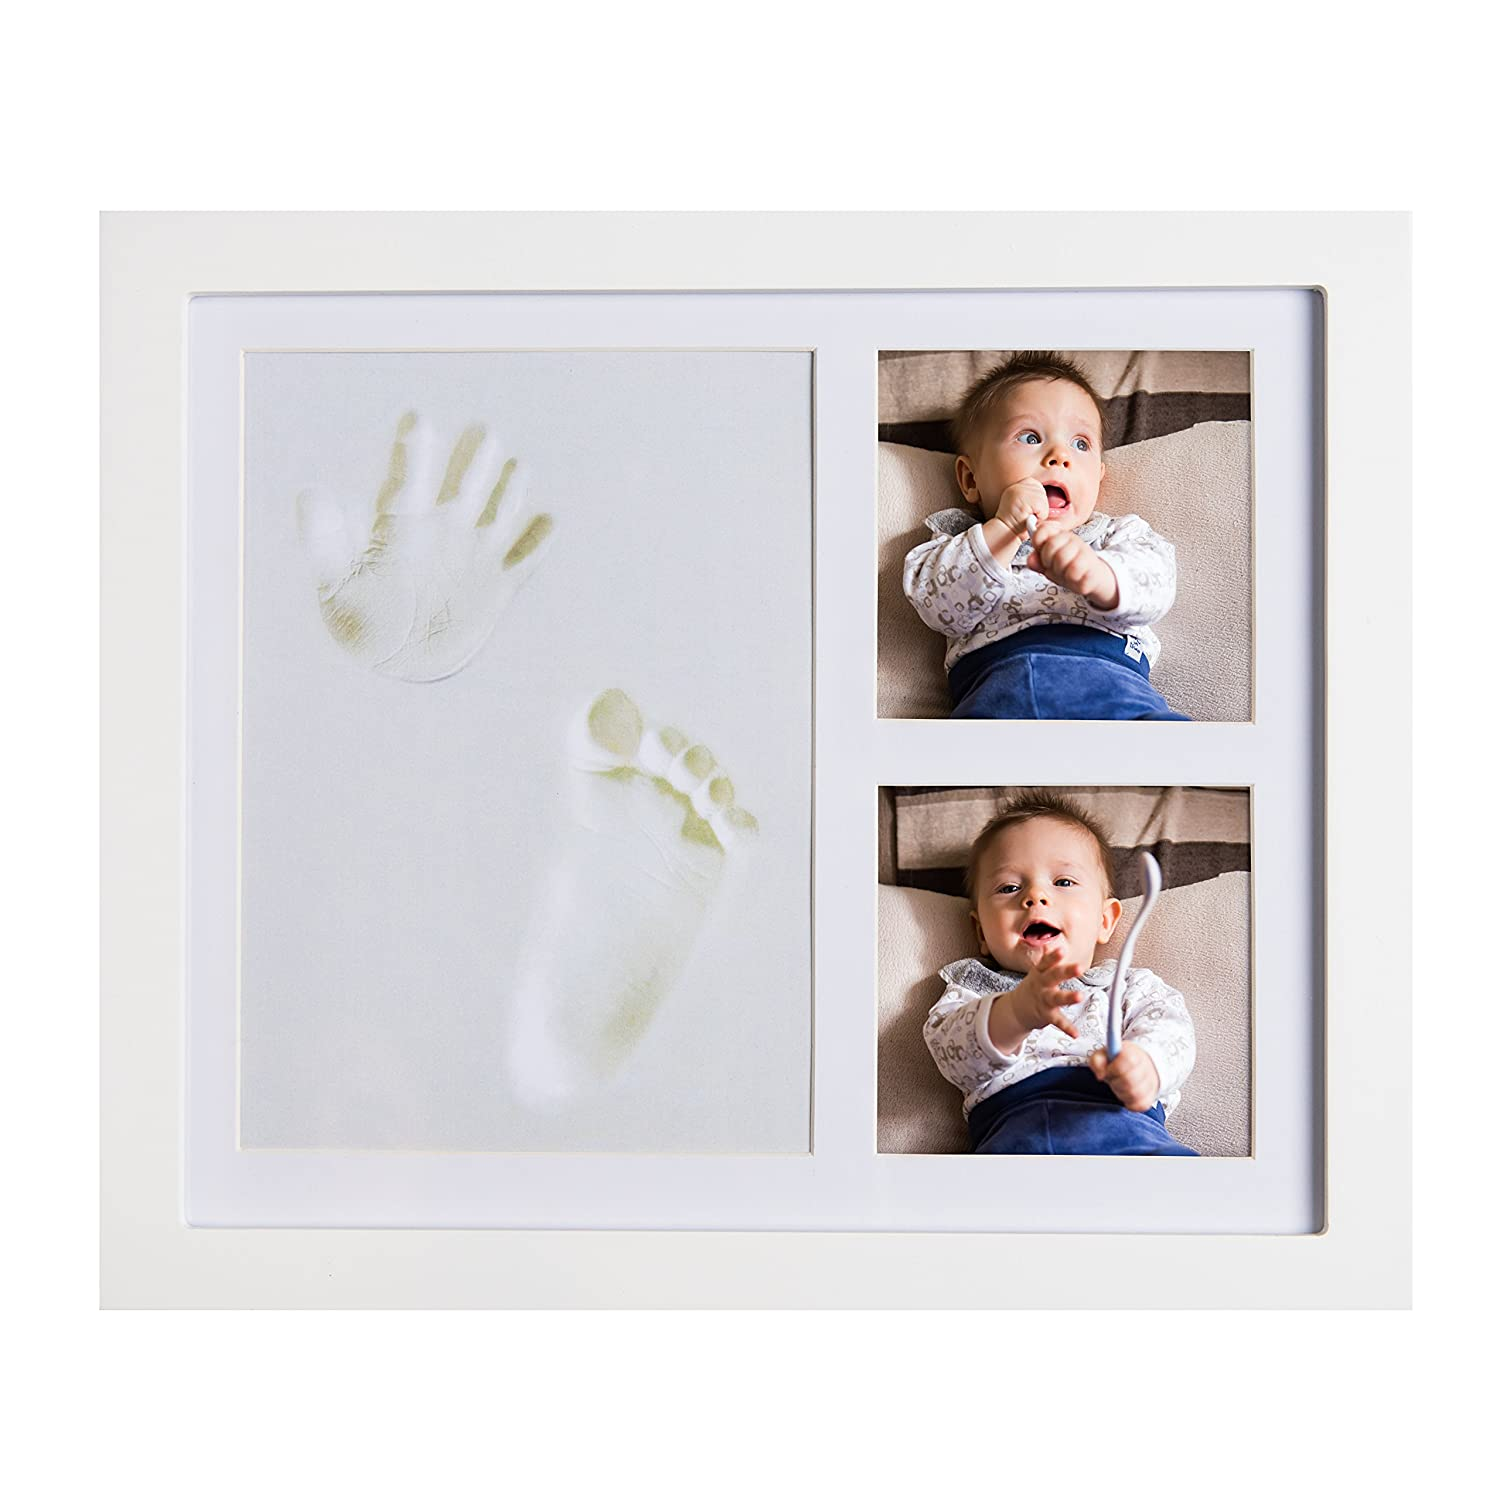 JOYBINO Baby Clay Handprint & Footprint Photo Frame Kit for Newborn Girls & Boys | Unique Baby Shower Gift Set for Newborn Parents | Memorable Keepsake Decoration for Nursery Room Wall MorganMusk